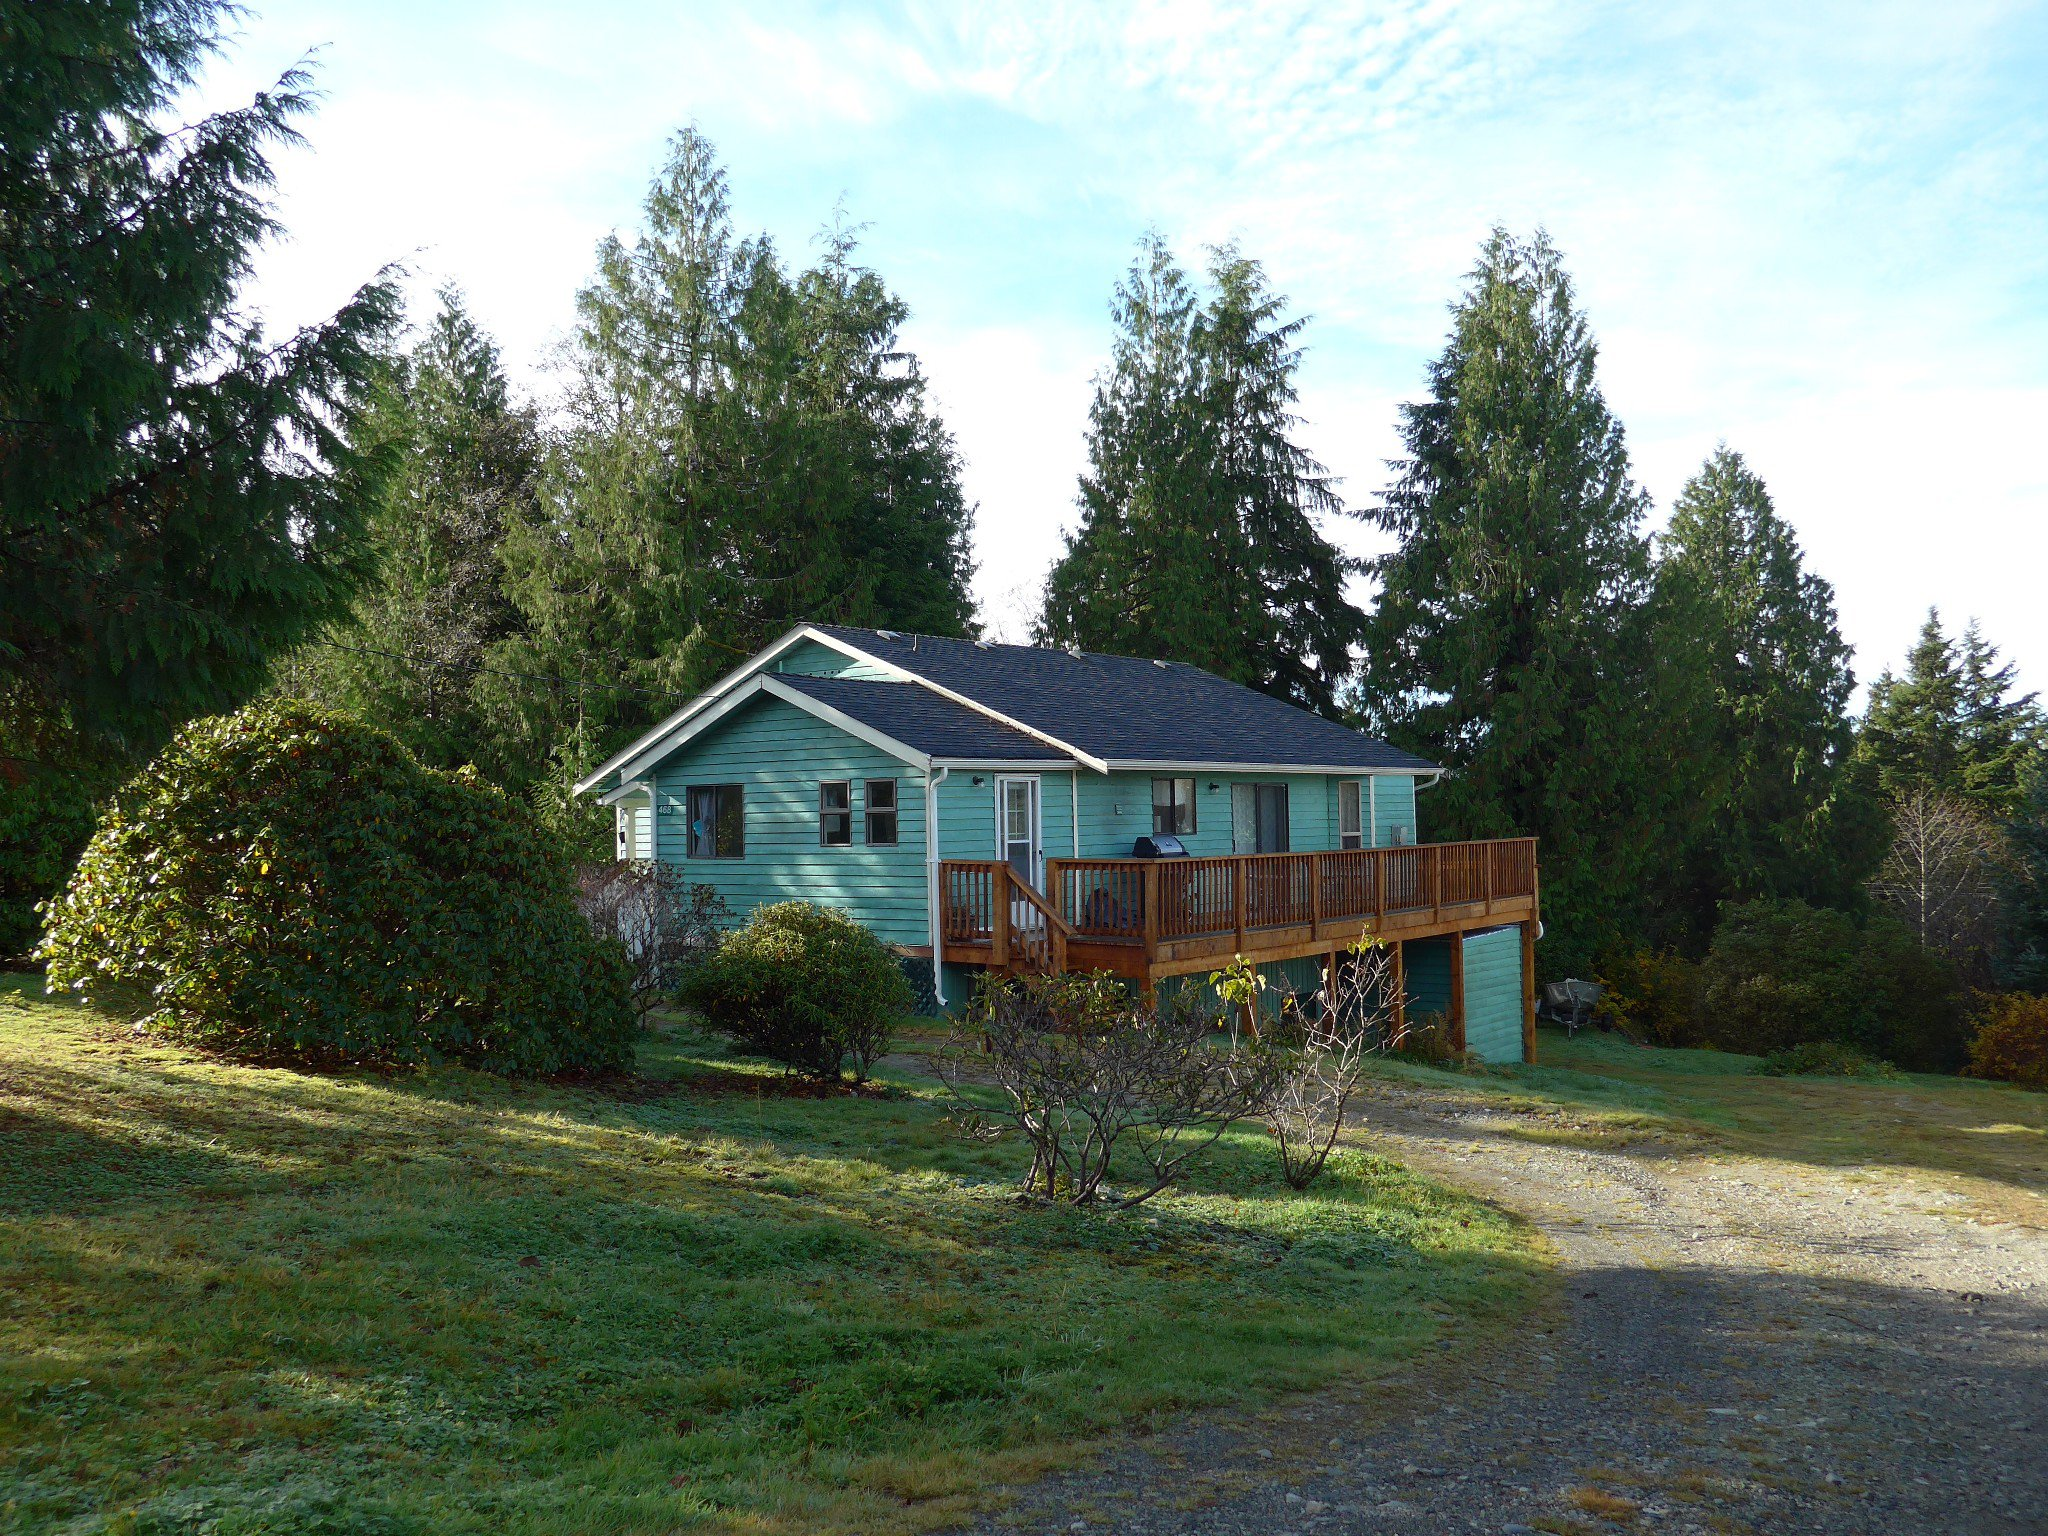 Main Photo: 468 Pachena Road in Bamfield: East Village House for sale (Port Alberni)  : MLS®# 463384